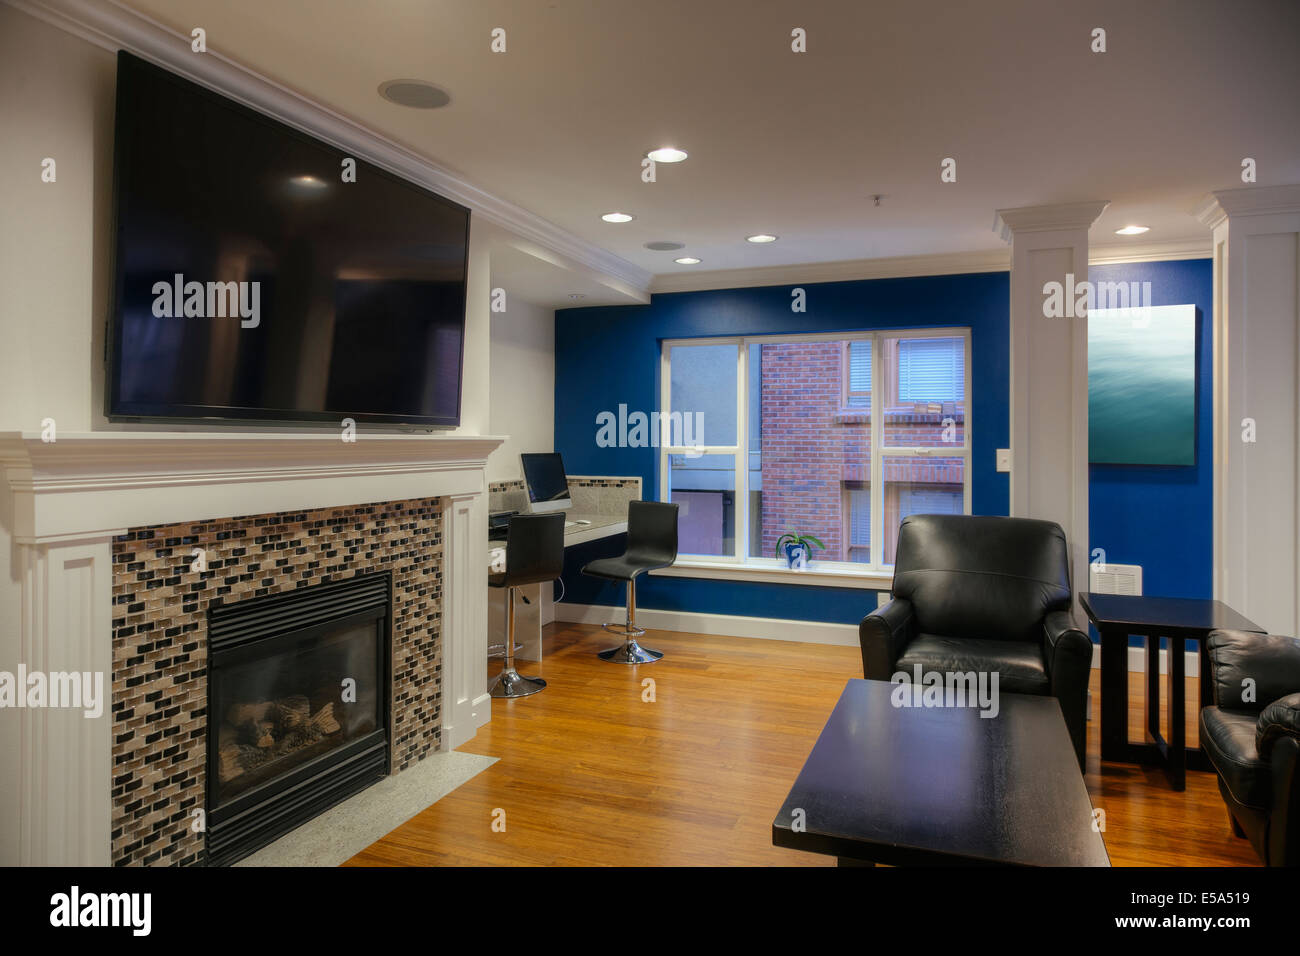 Fireplace and television in common area - Stock Image